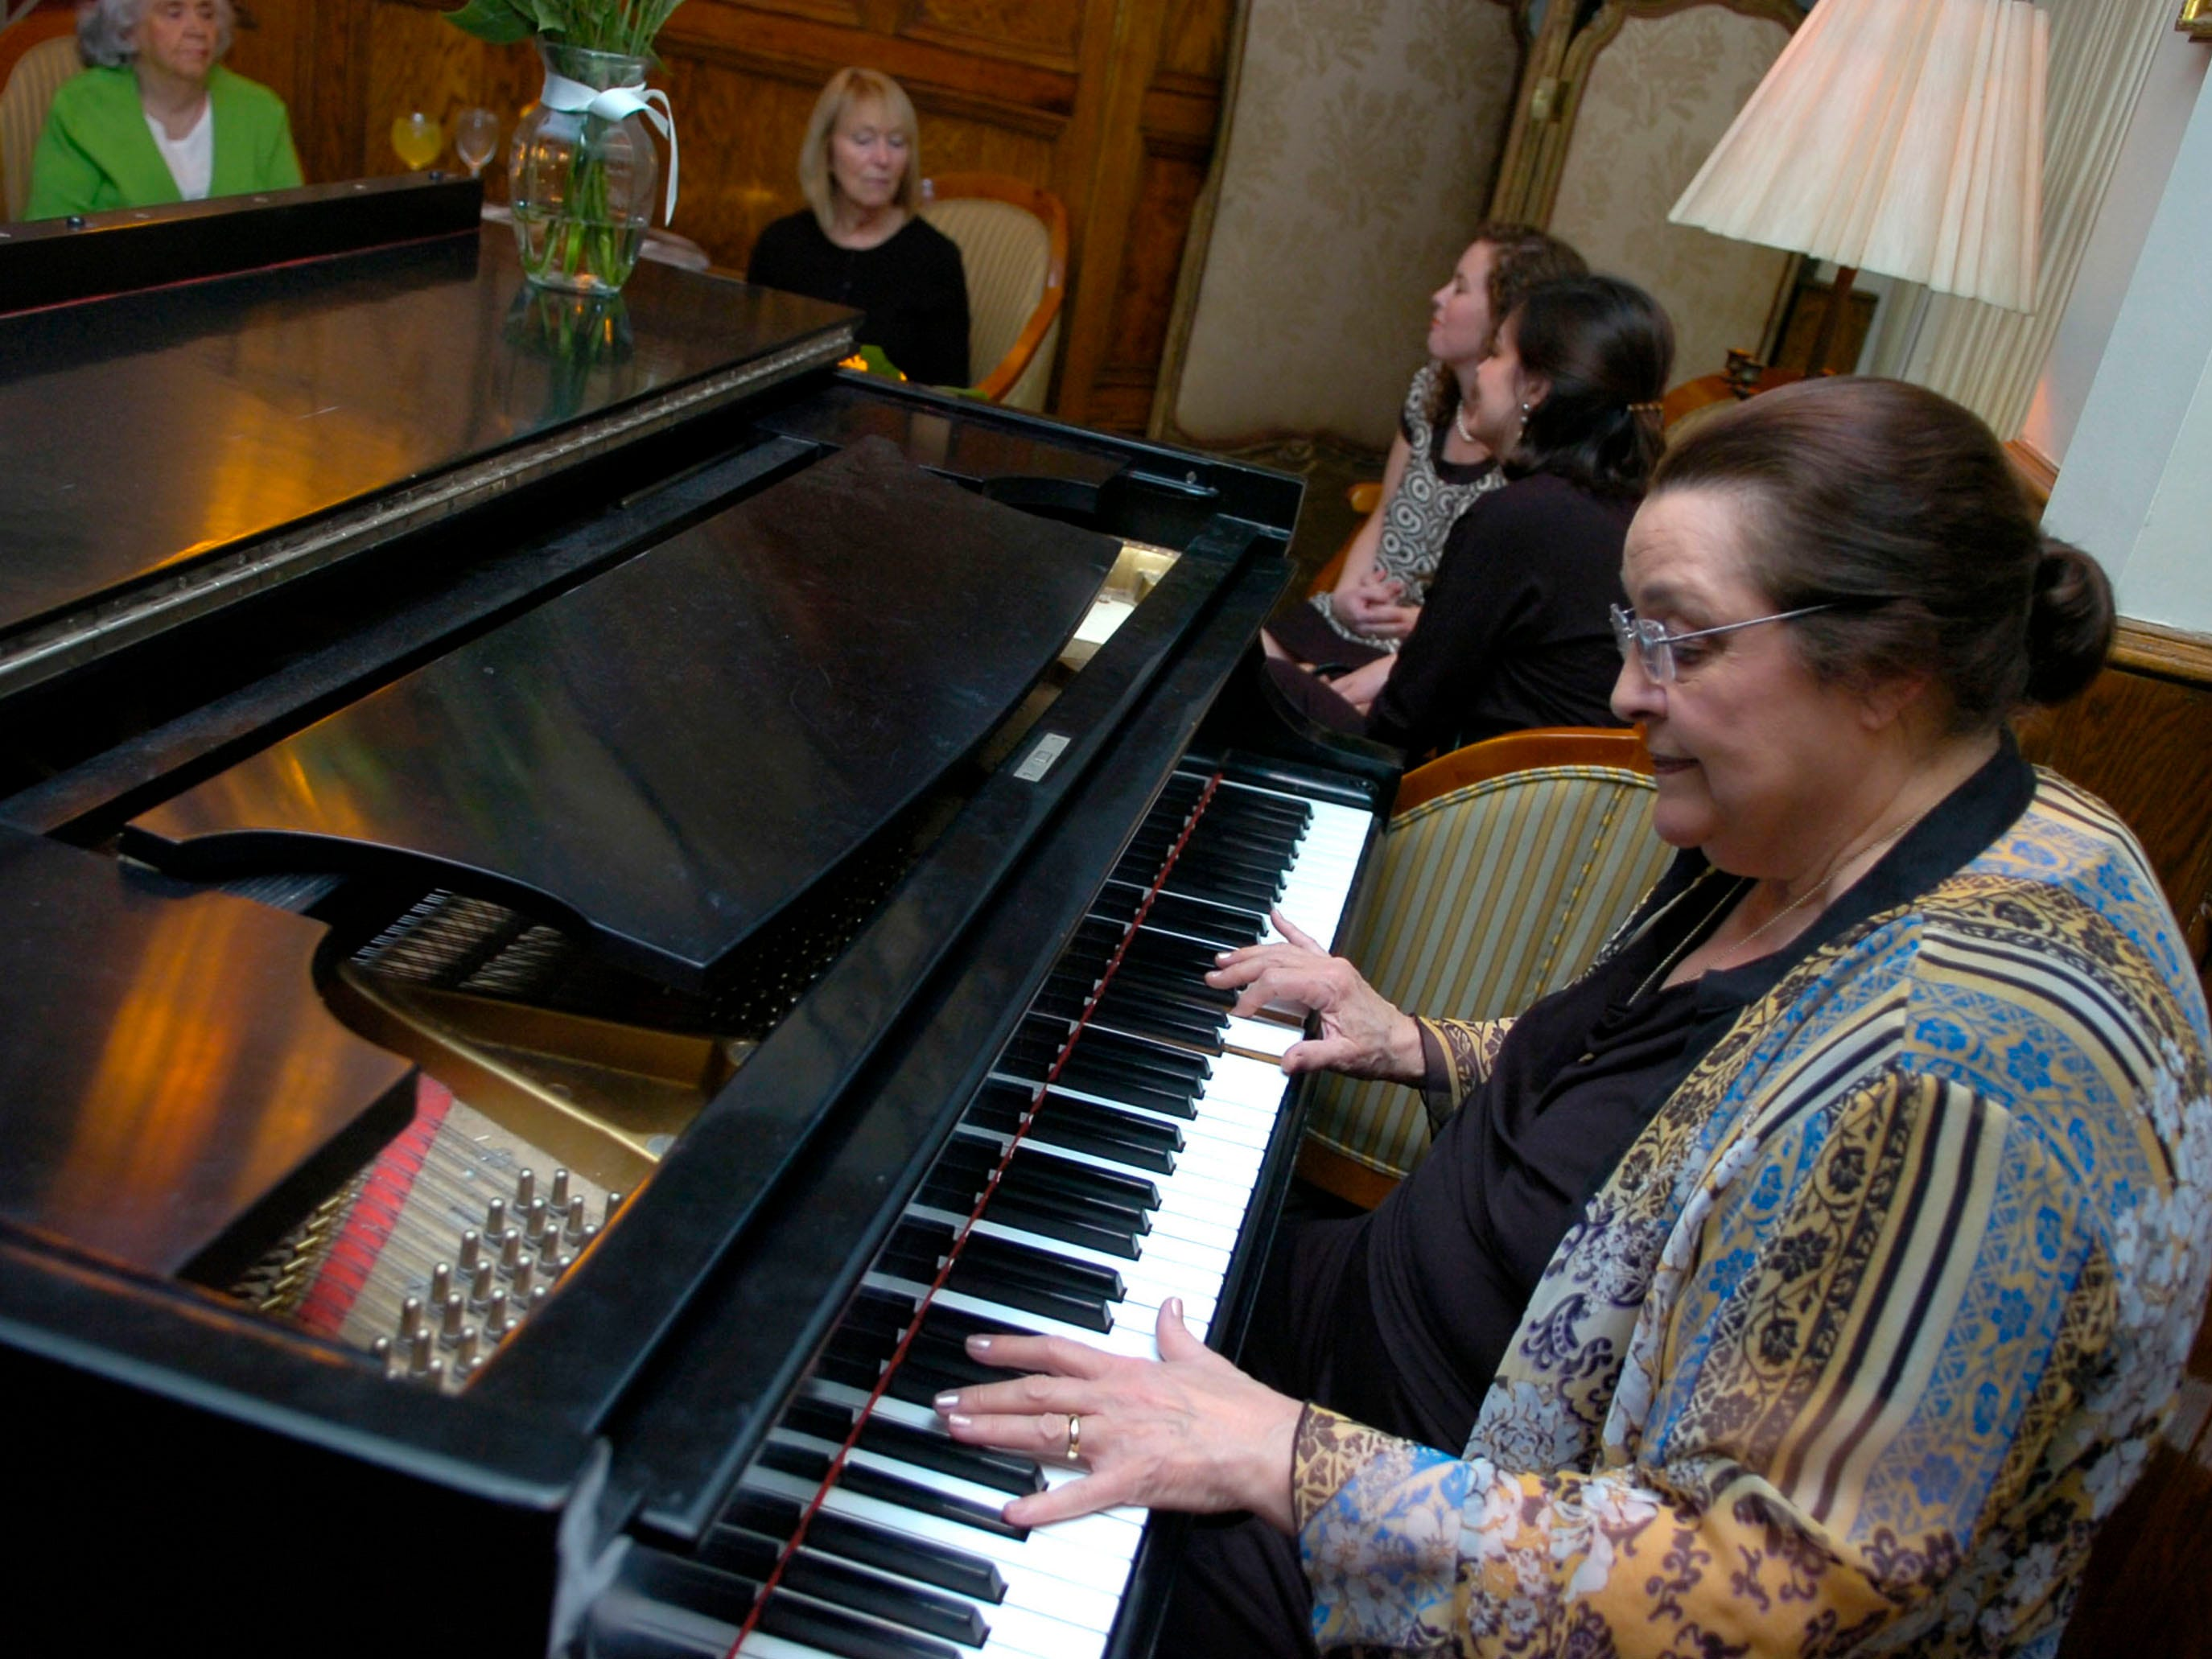 In 2009, pianist Judye Russell Brackner entertains